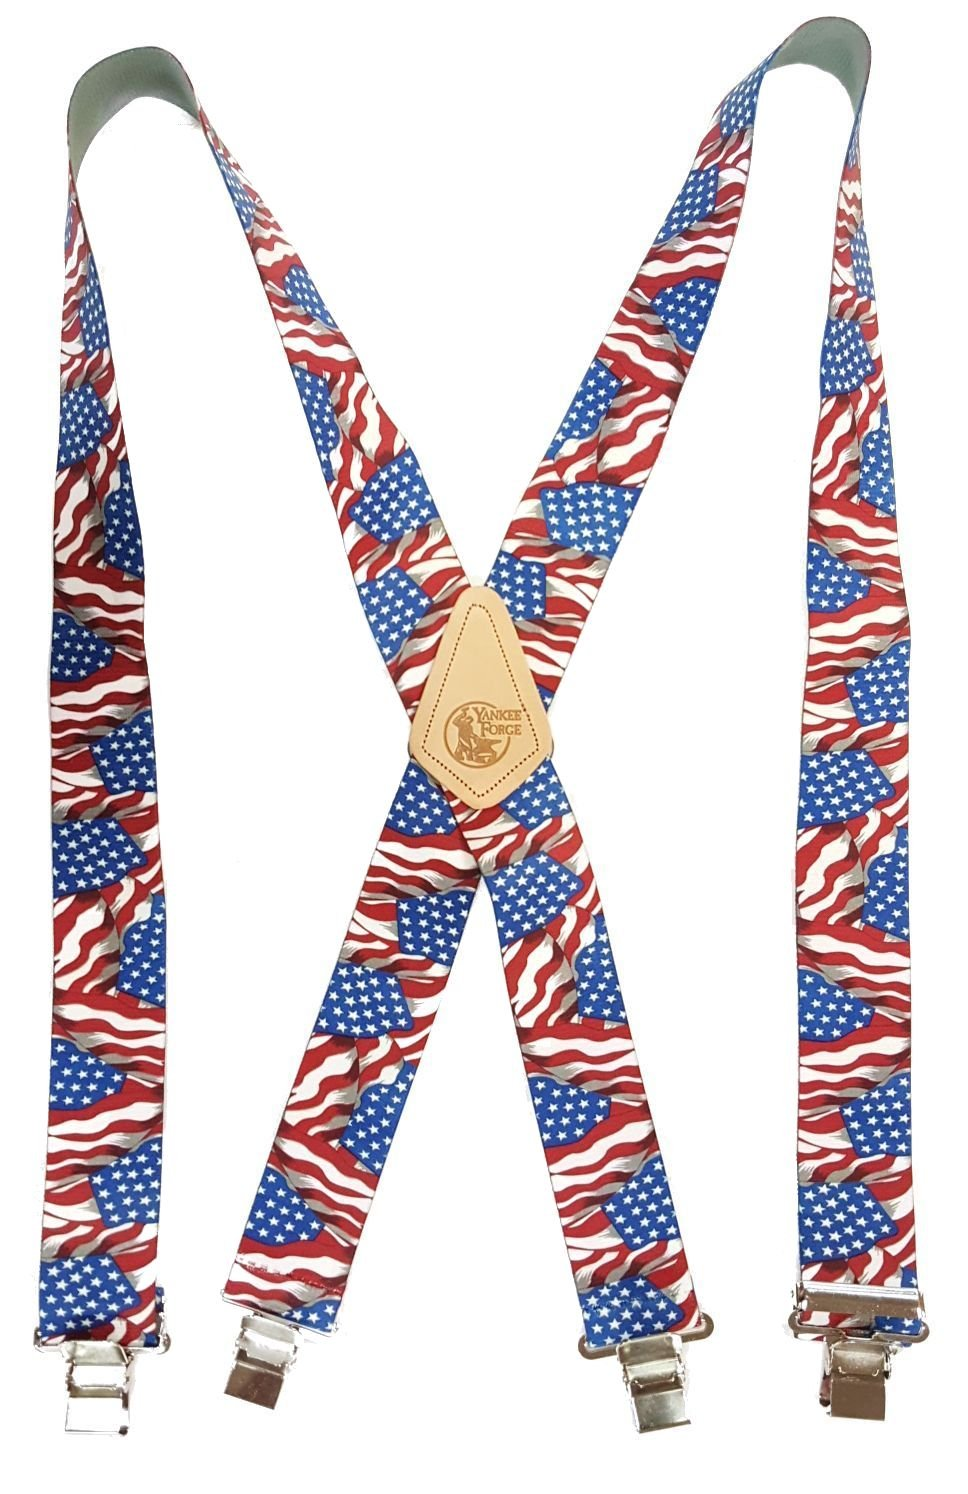 WAVY AMERICAN FLAG - USA MADE CUSTOM SUSPENDERS - 2'' WIDE - STRONG METAL CLIPS - 02012 - 48''